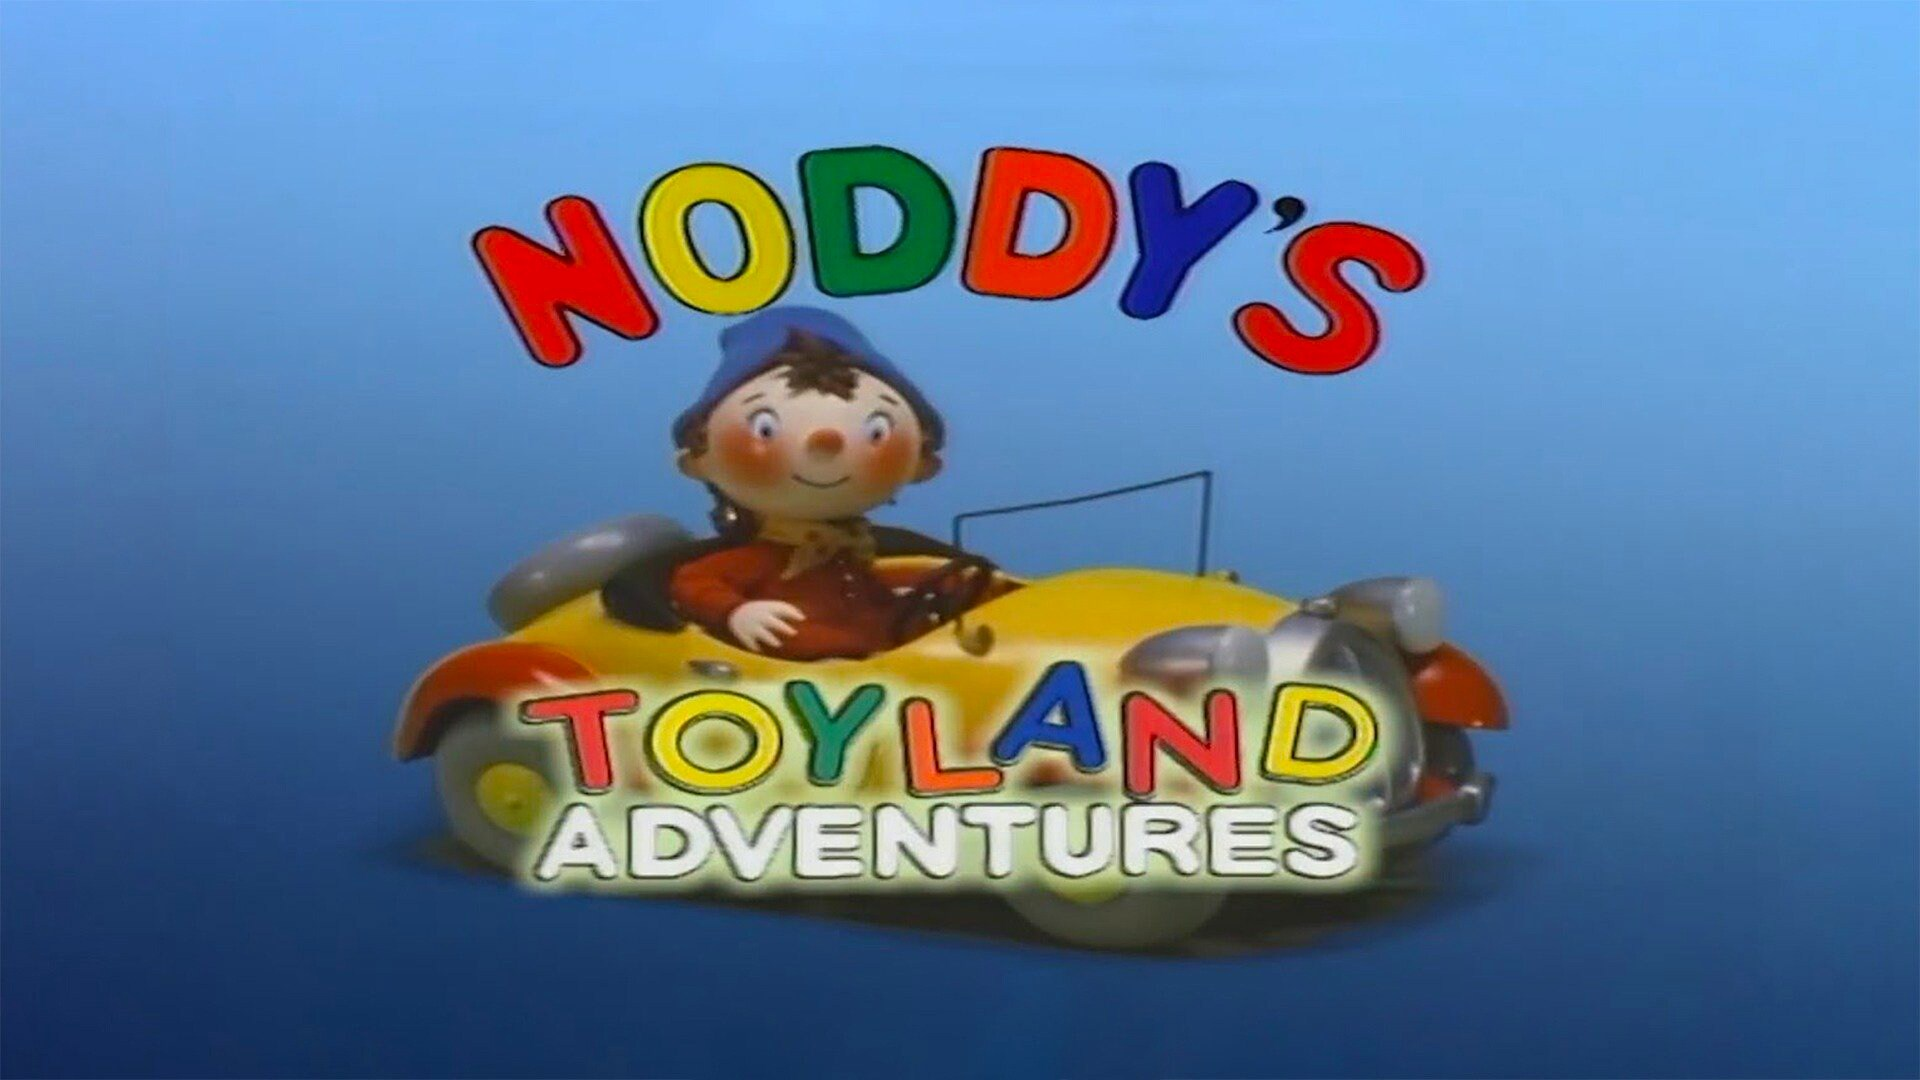 Noddy and the Artists